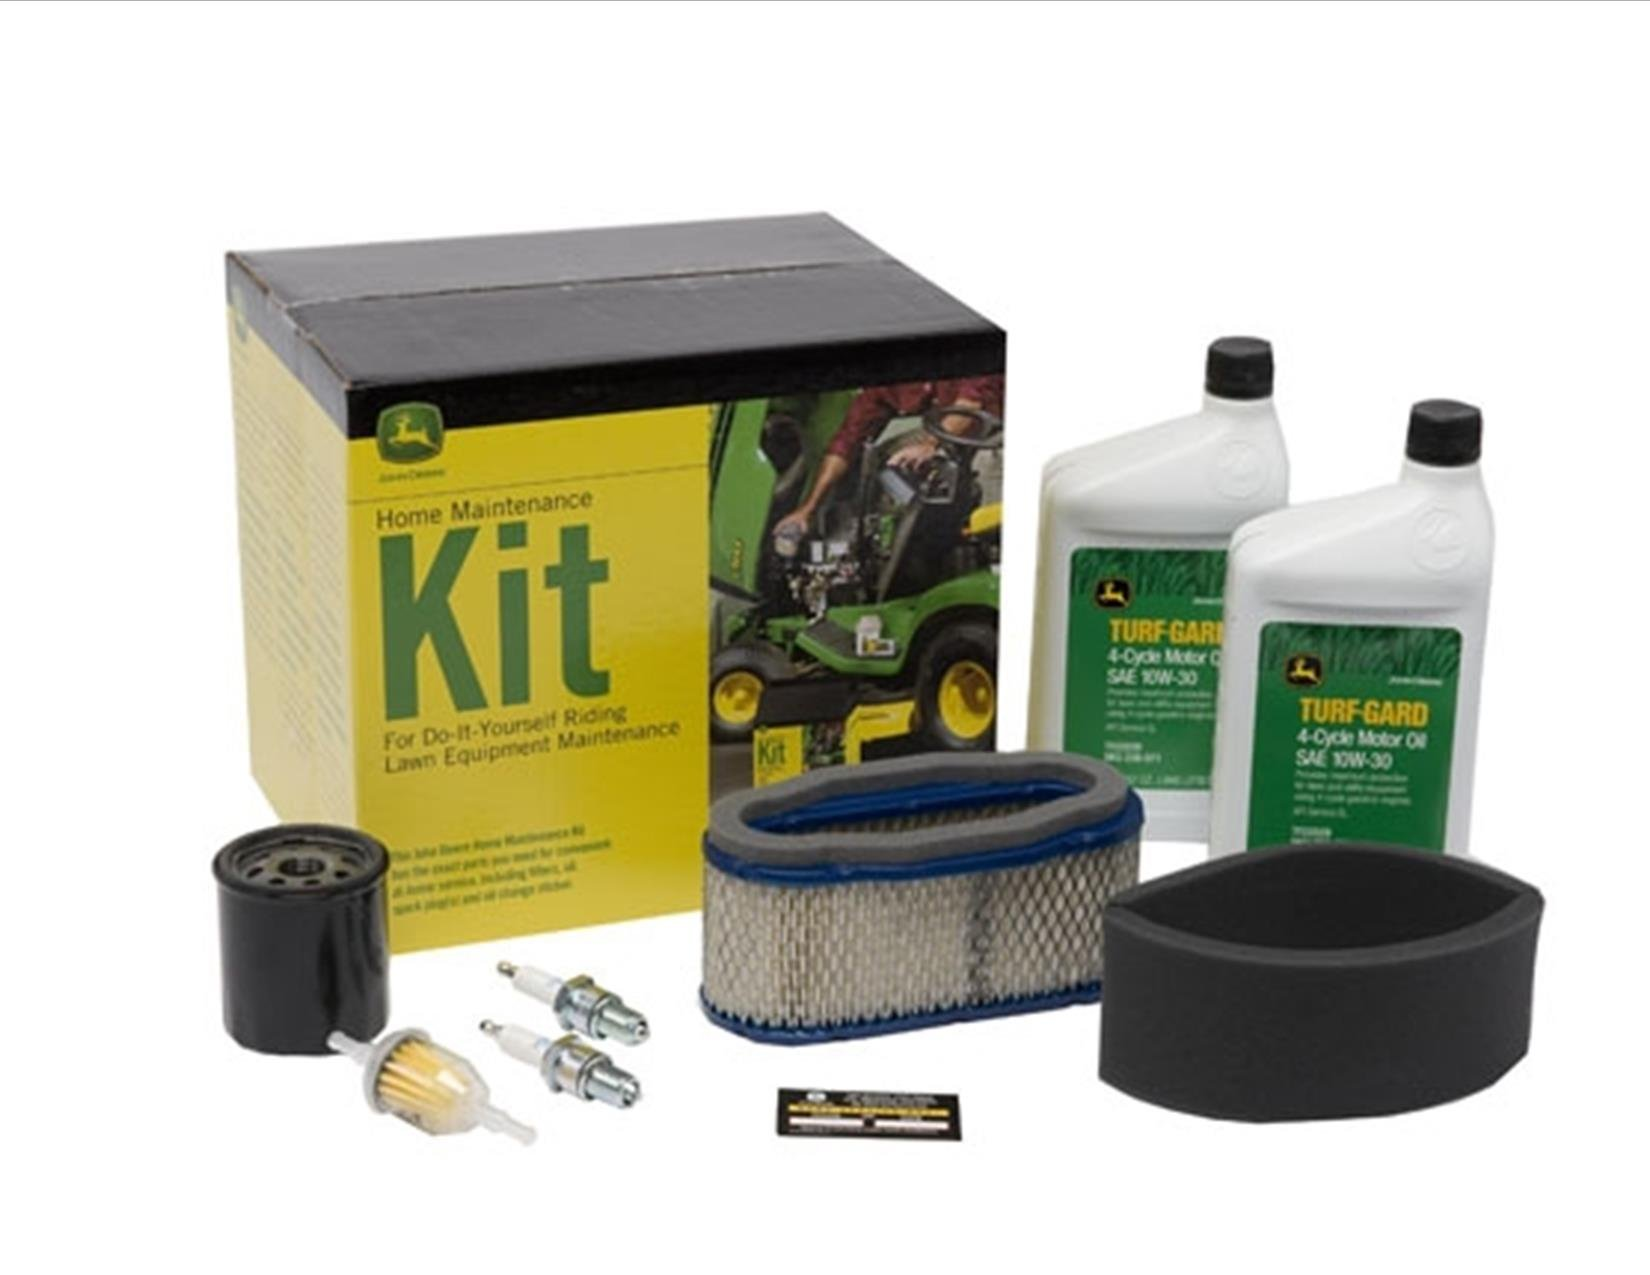 ''John Deere ''. Home Maintenance Kit Fits Z445 Z465 X 320 X324 X 340 X360 X 500 Filters Oil LG249 CHECK ENGINE & SERIAL NUMBER BEFORE ORDERING